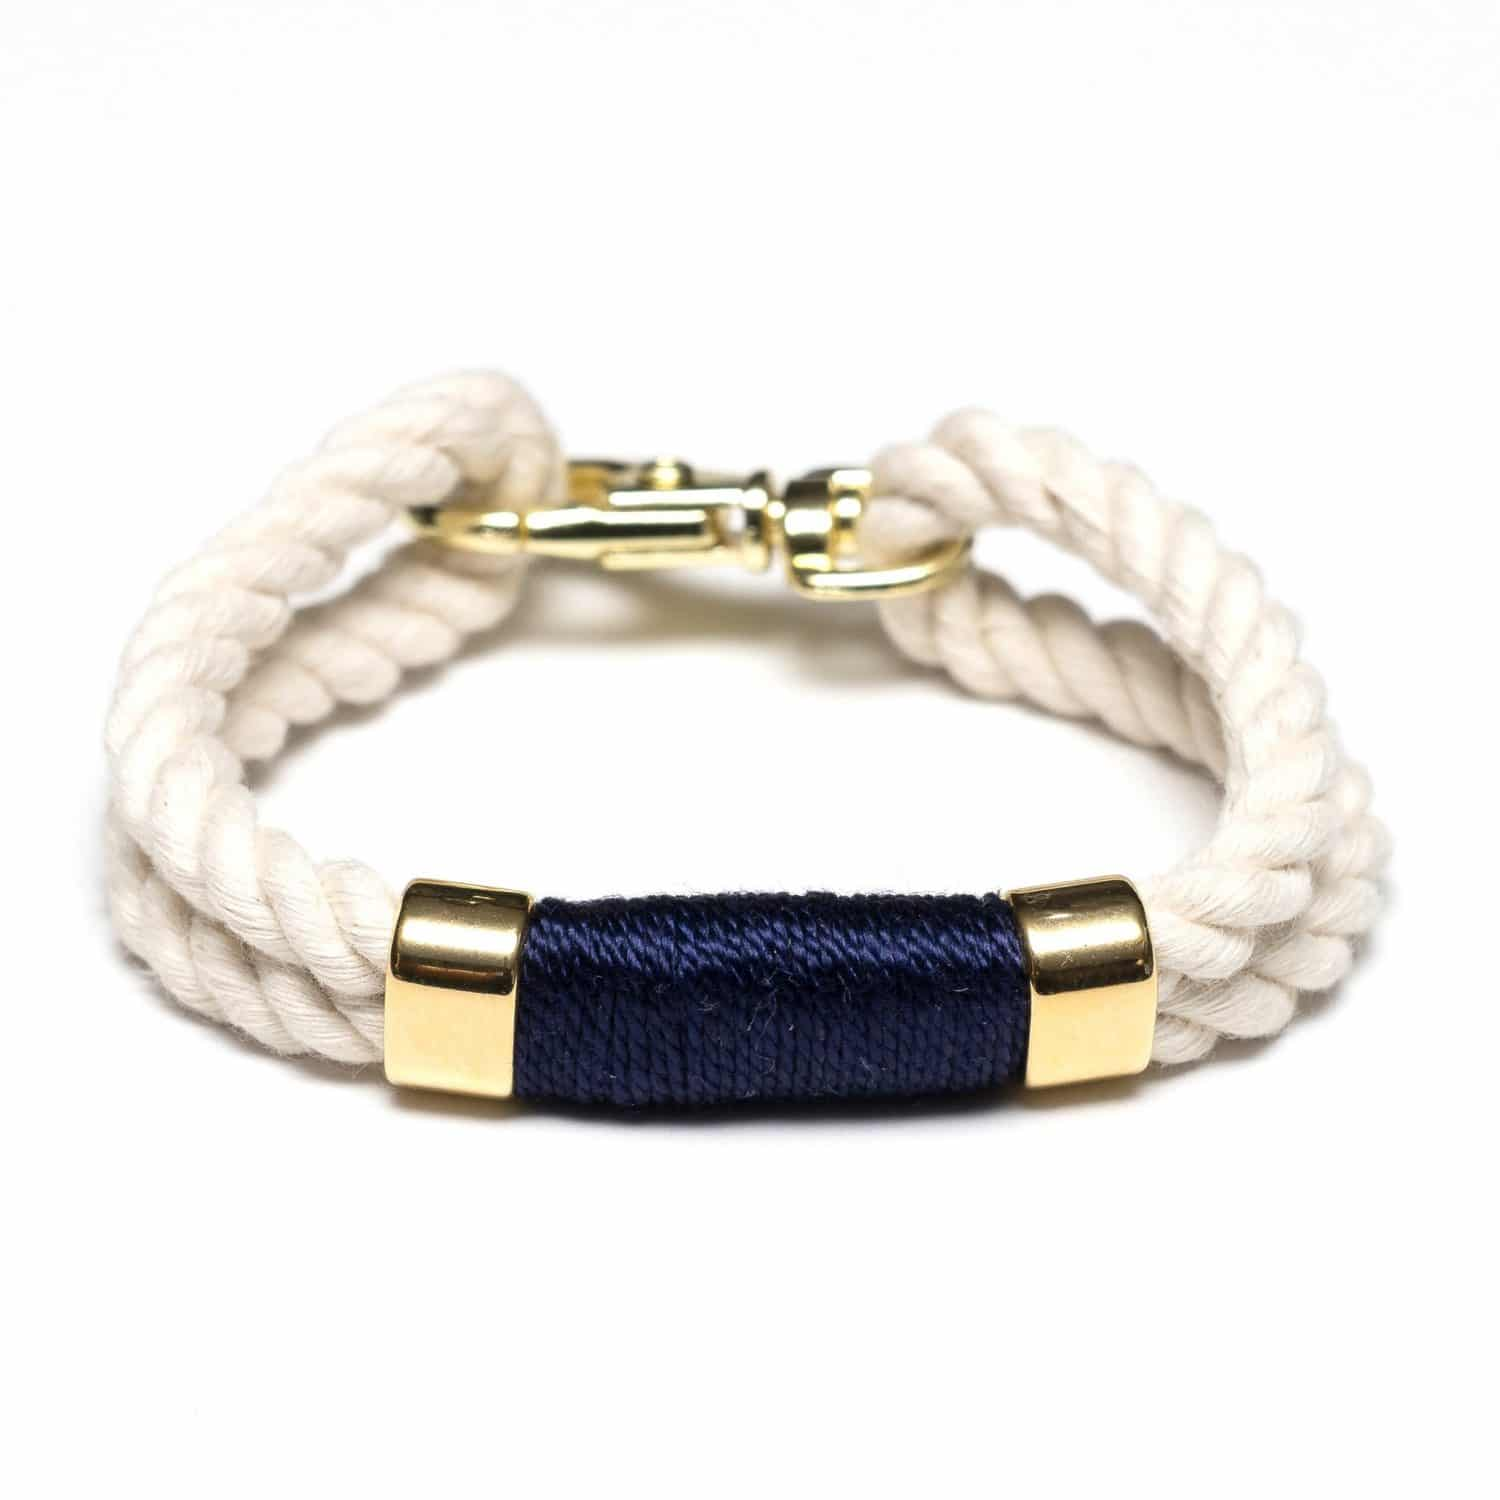 bracelet yachtmaster etiquette products thread luxury anchor navy